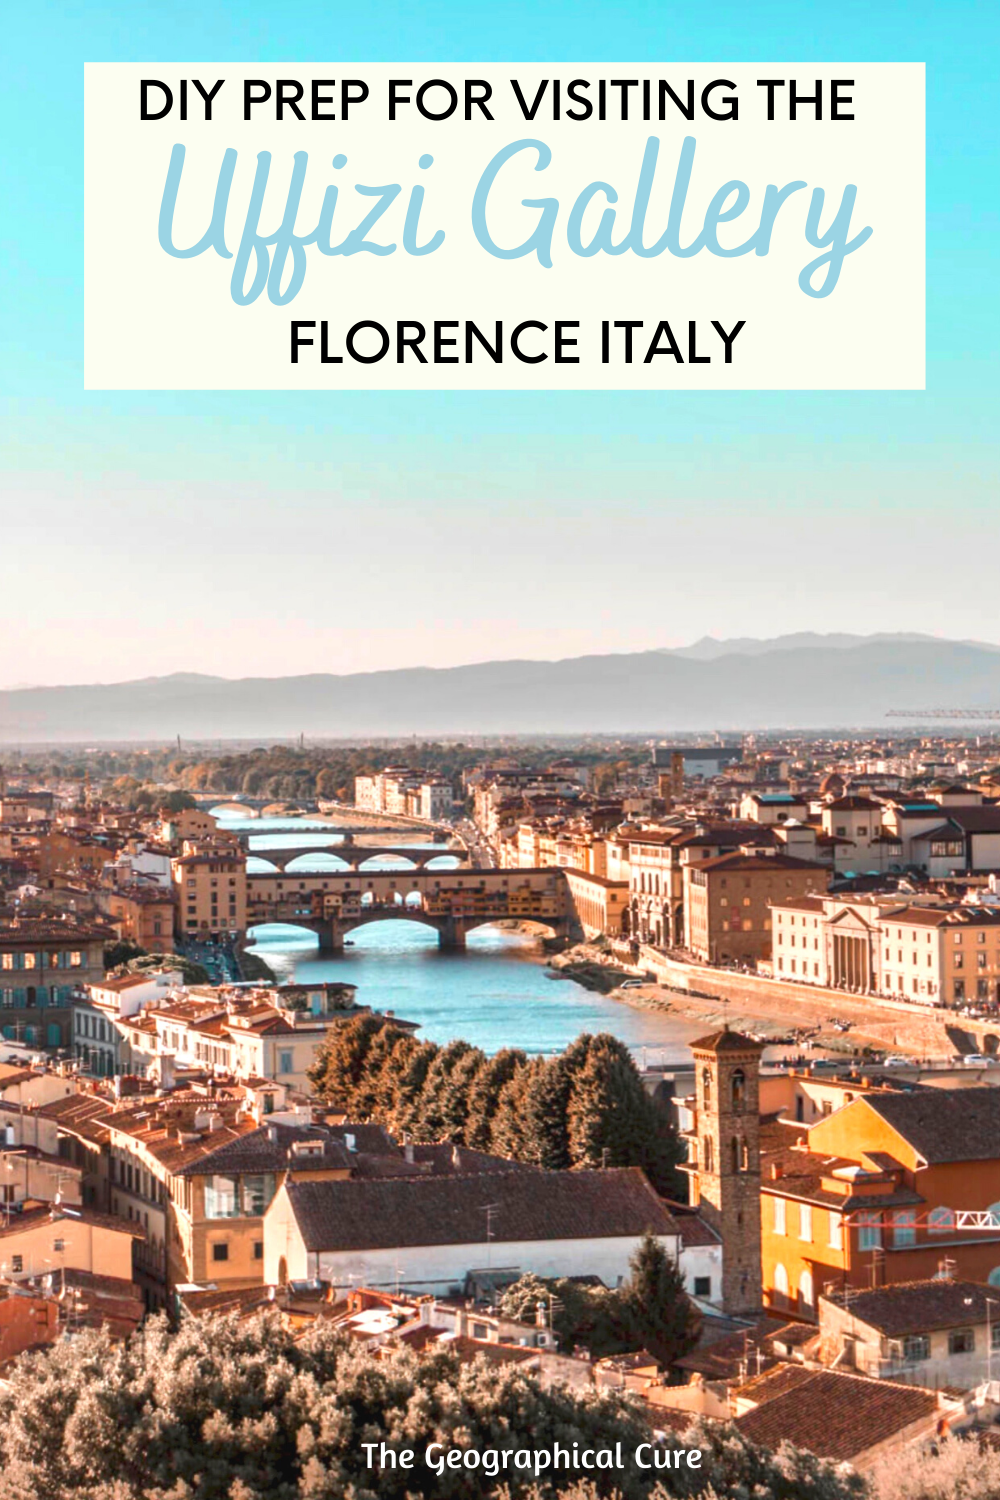 Tips for Preparing for a Visit to Florence's Amazing Uffizi Gallery